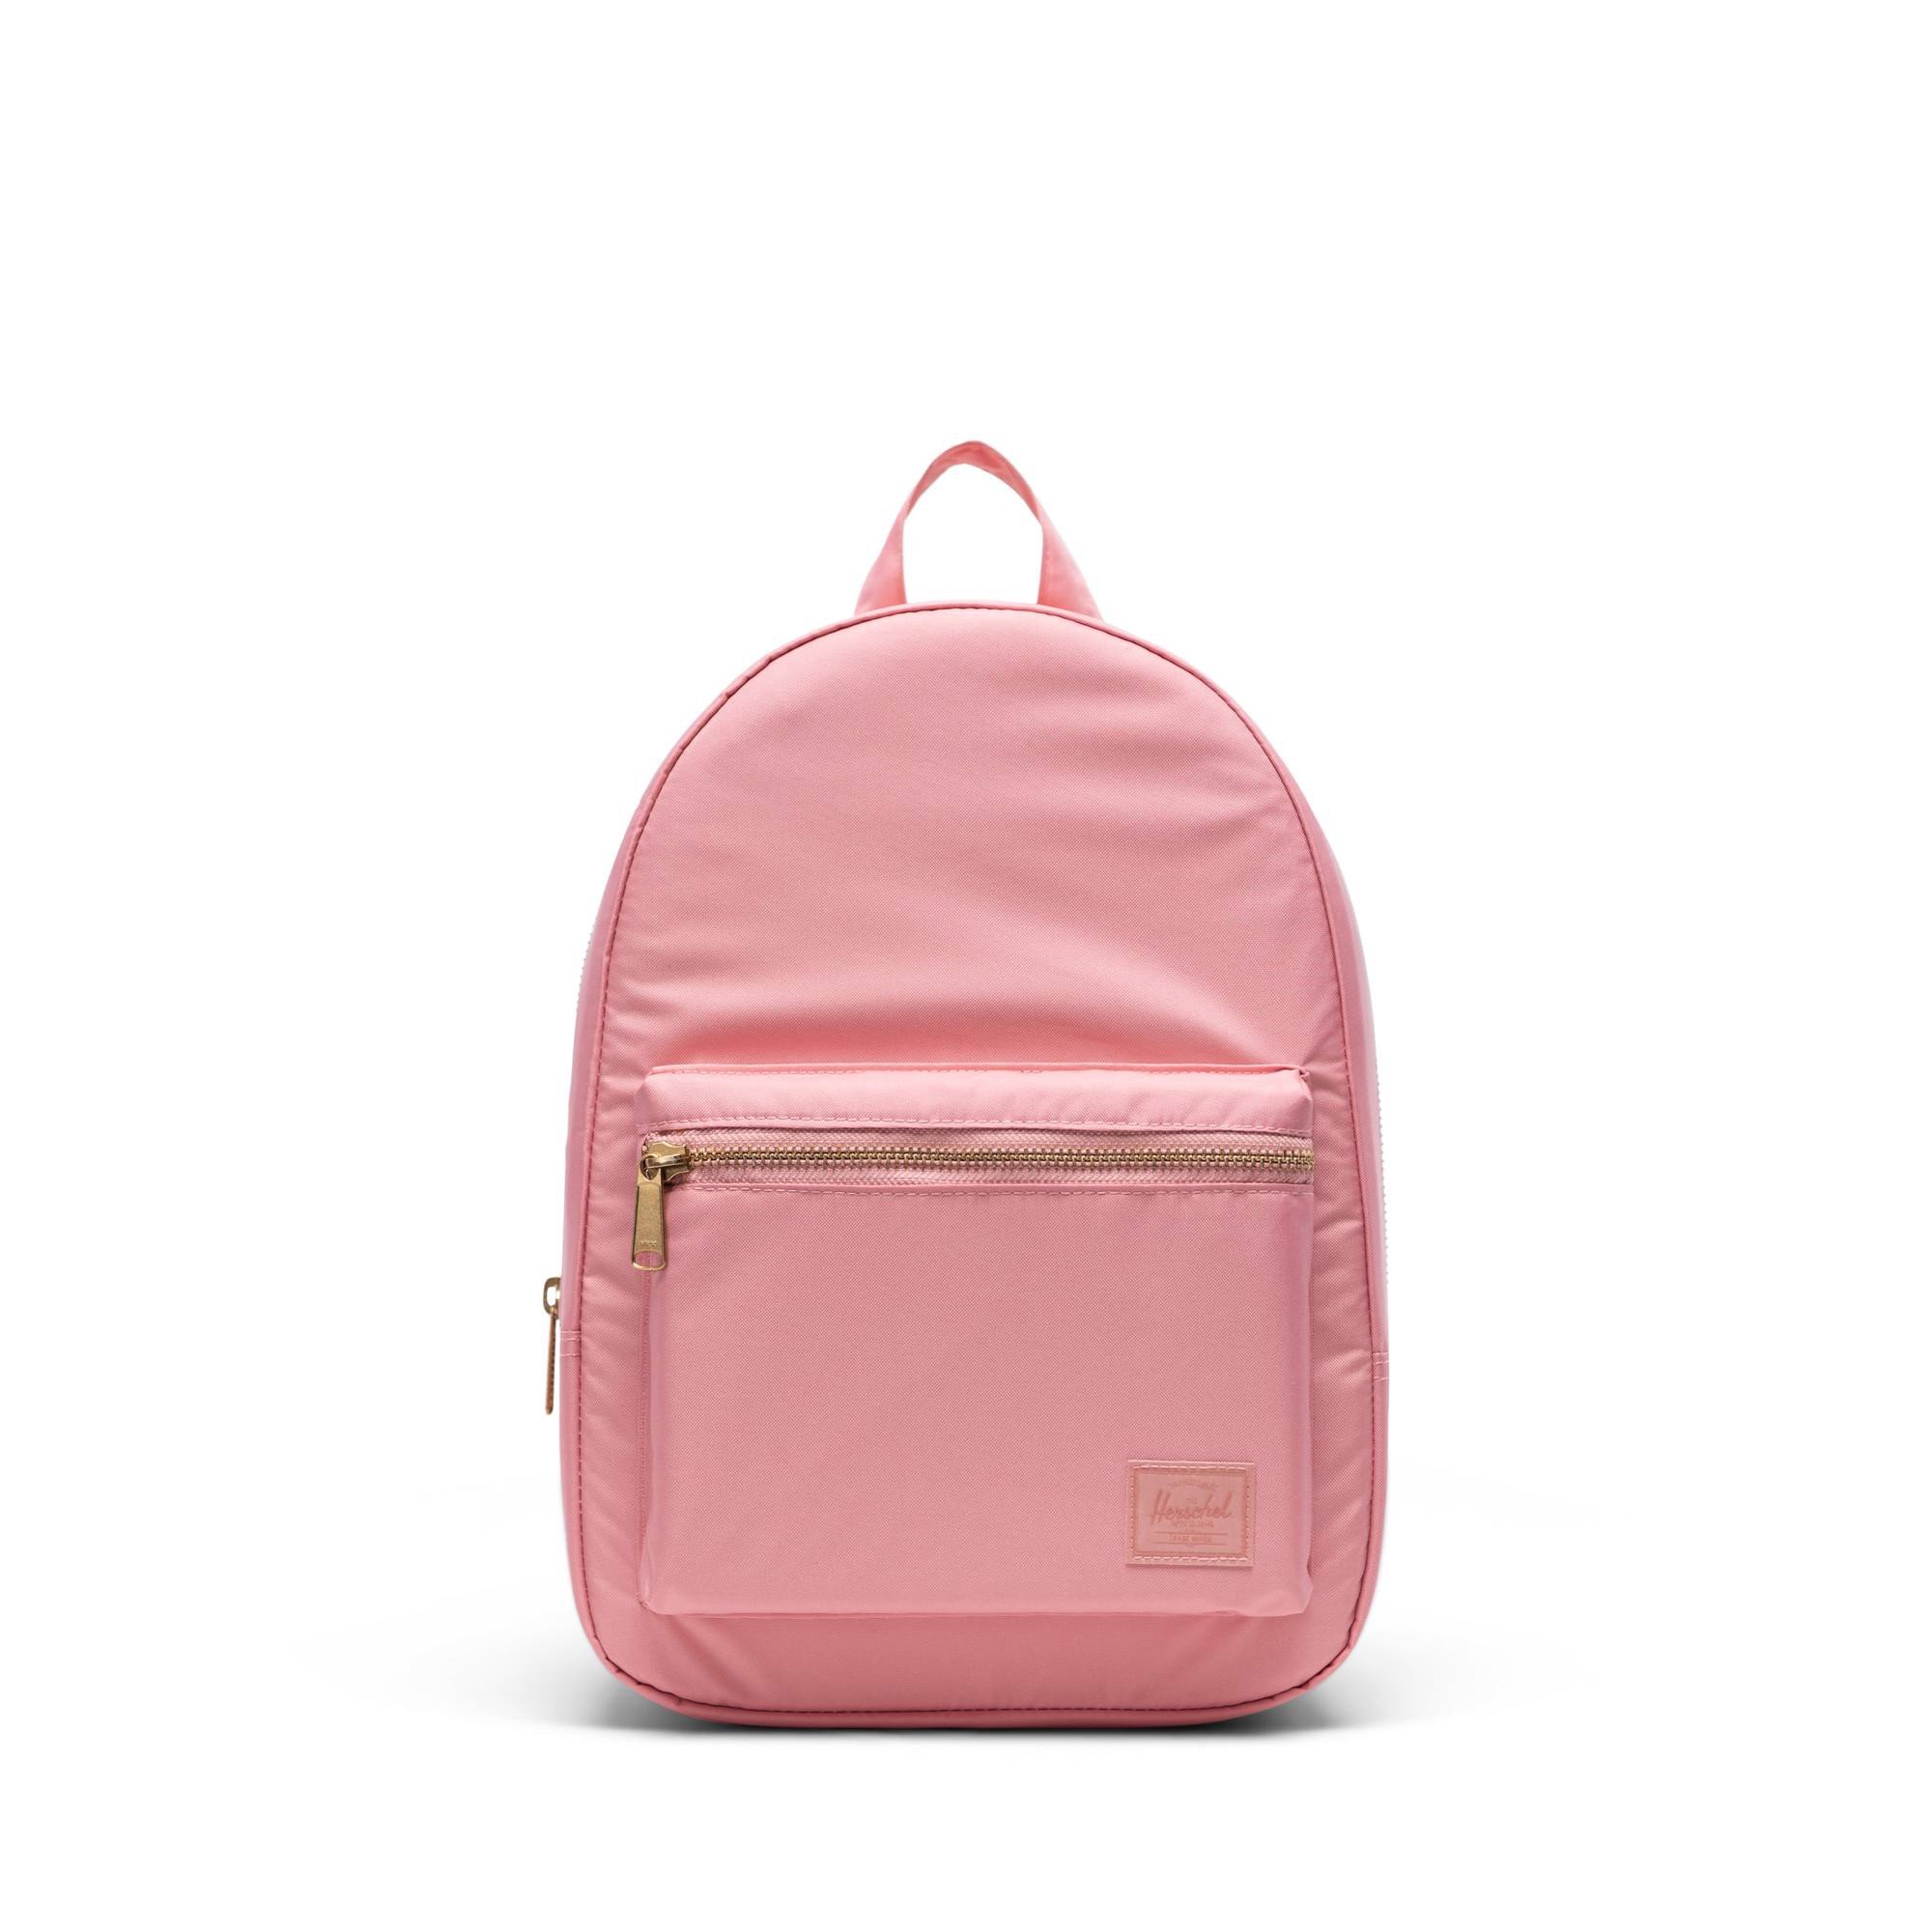 Herschel Grove Backpack Light | Small - Rose